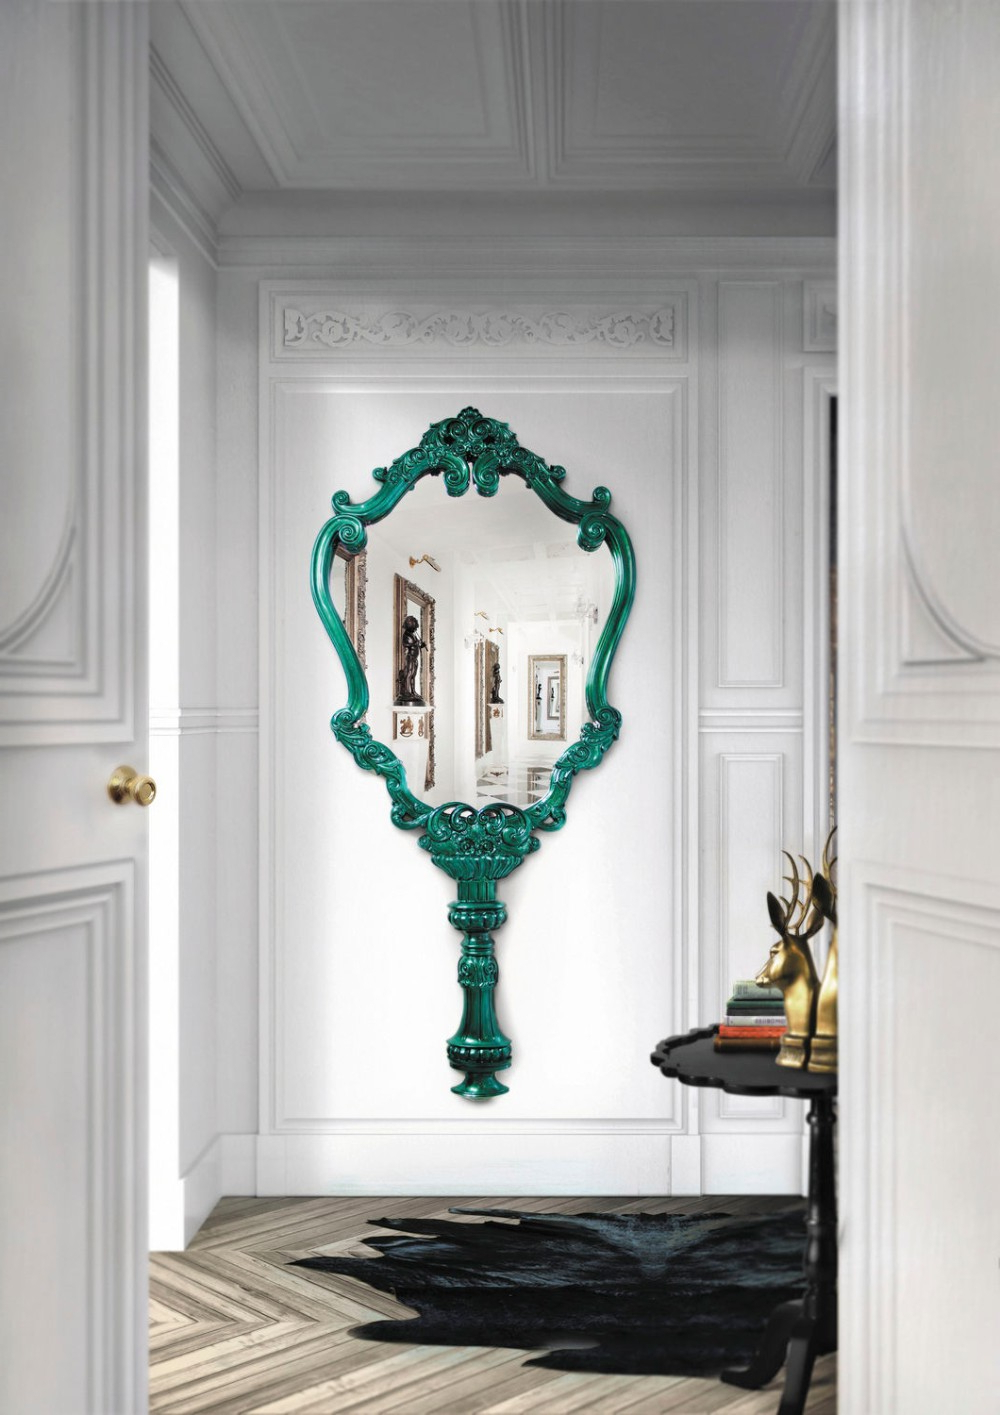 Pretty Wall Mirrors Intended For Widely Used 20 Exquisite Wall Mirror Designs For Your Living Room (View 2 of 20)